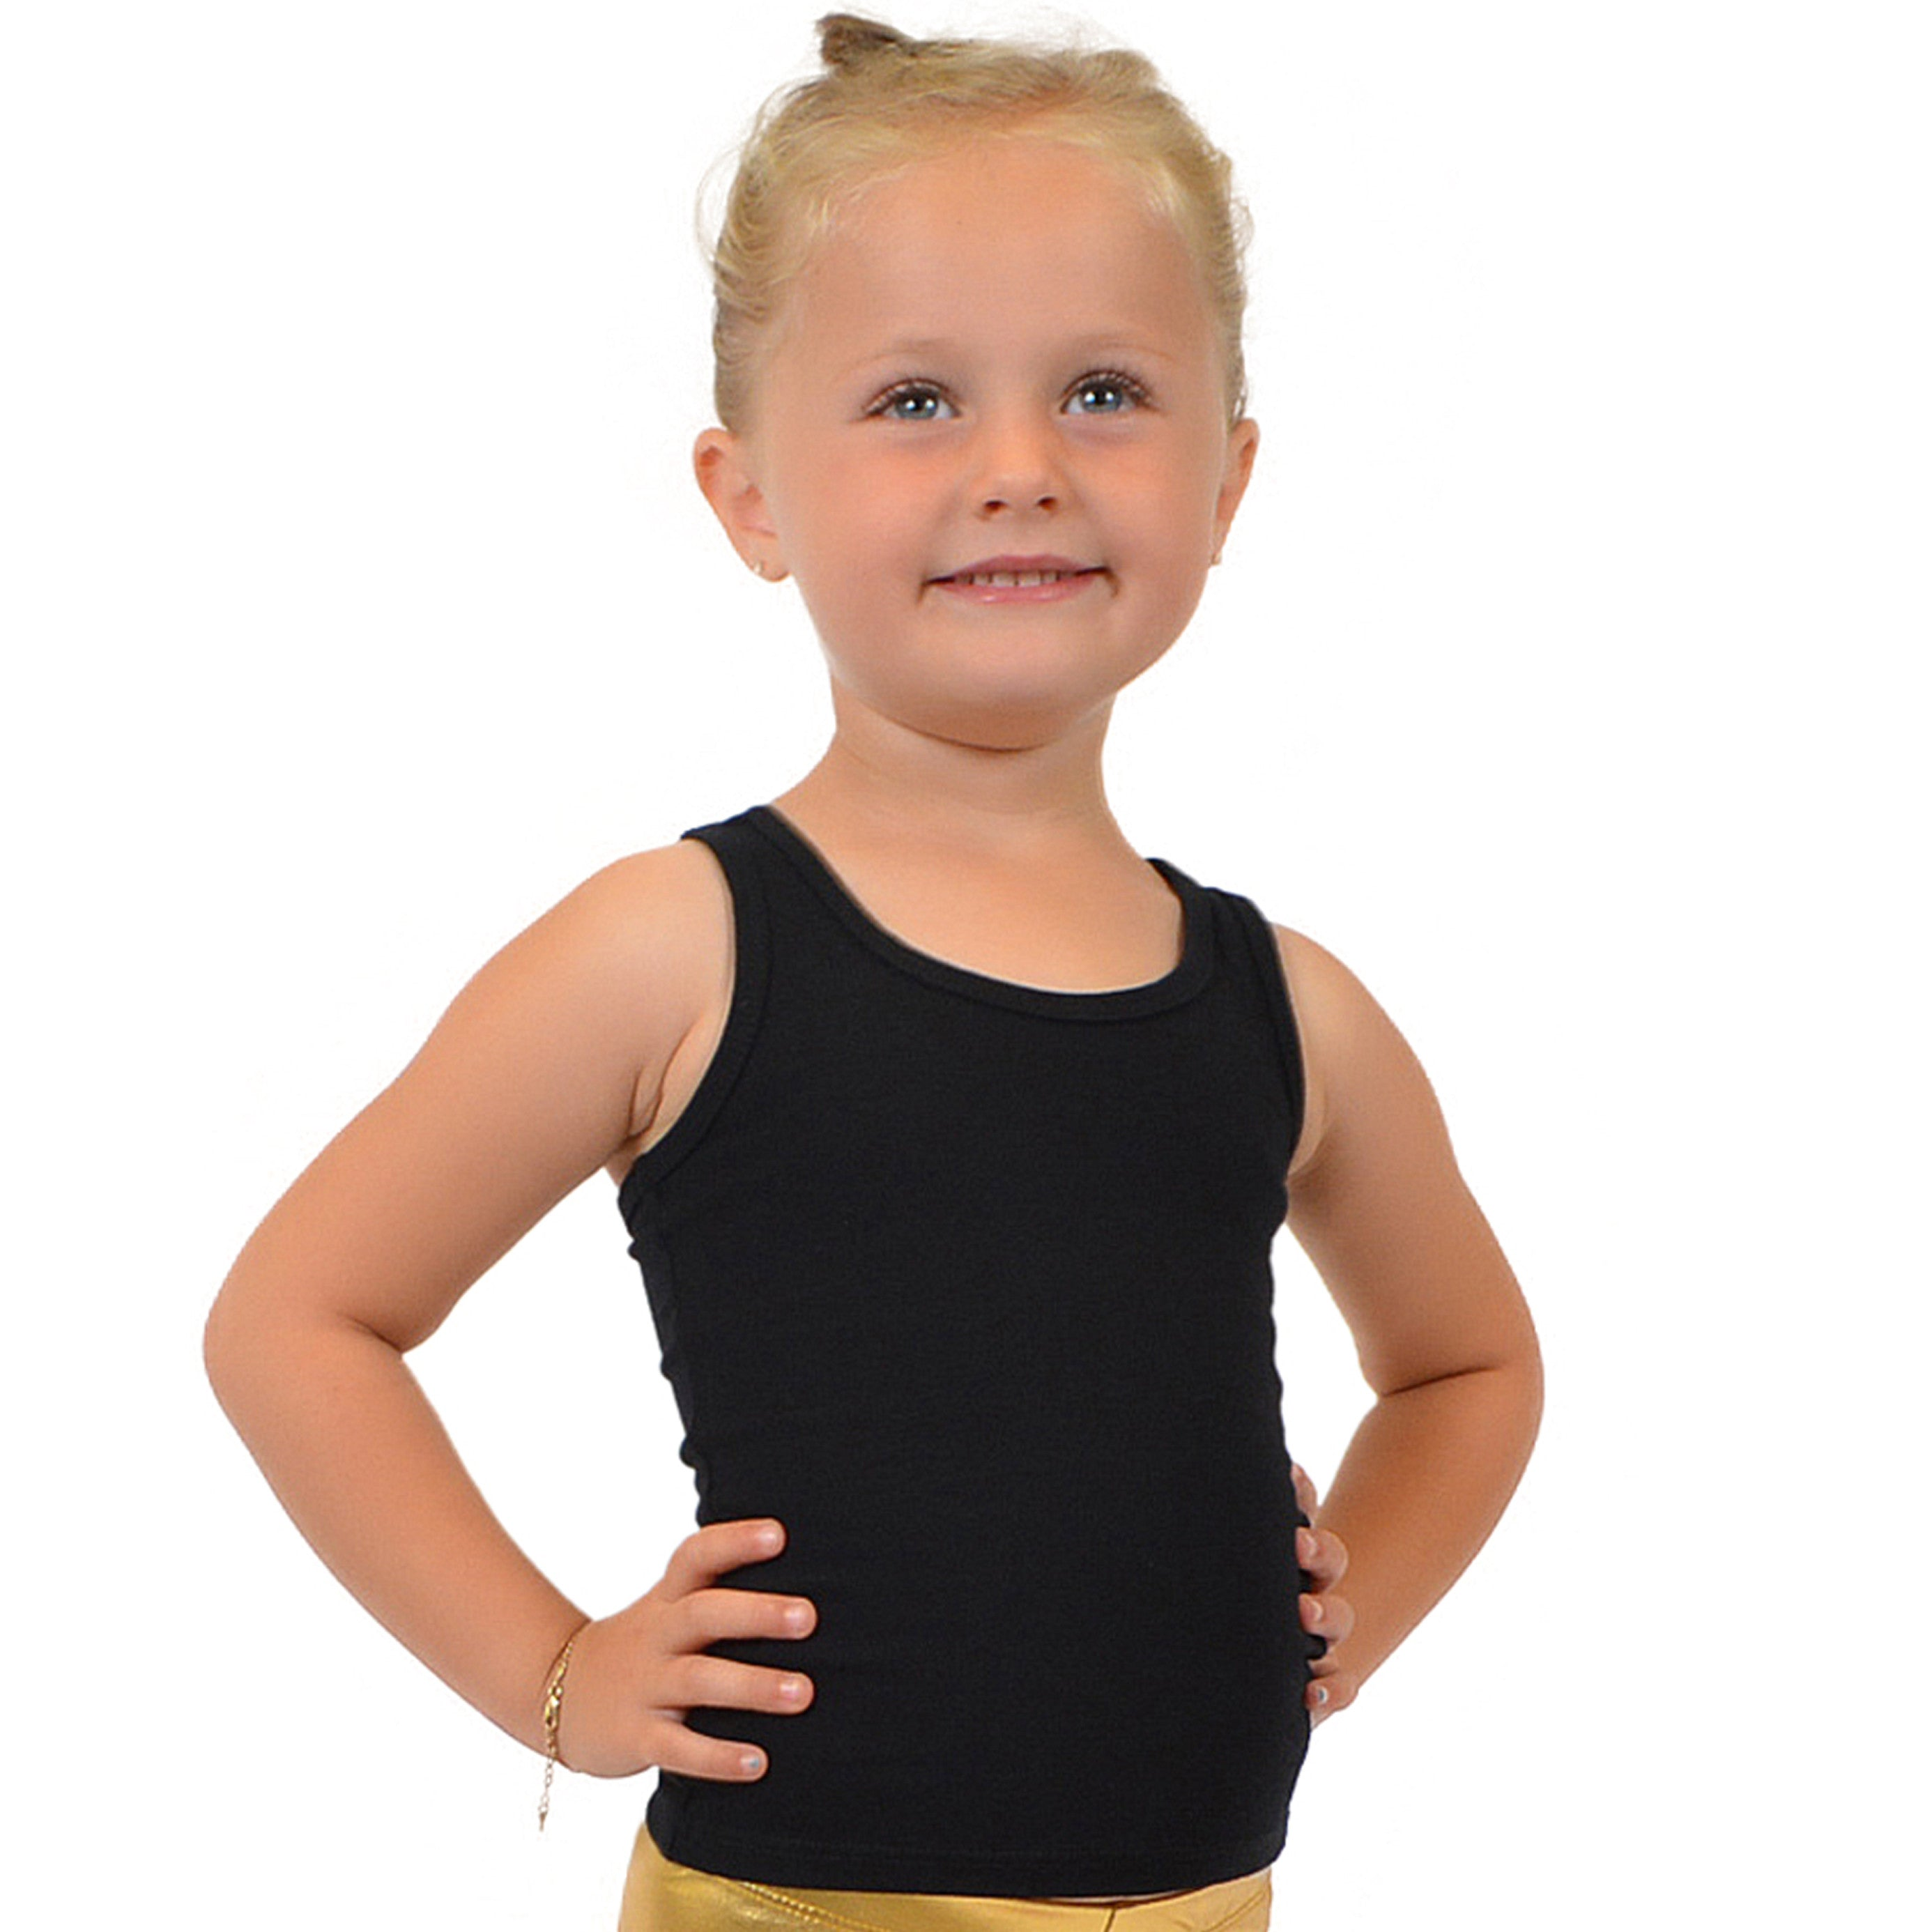 f4a53d3c7d1087 Stretch is Comfort Girl s Cotton Racerback Tank Top – Stretch Is Comfort